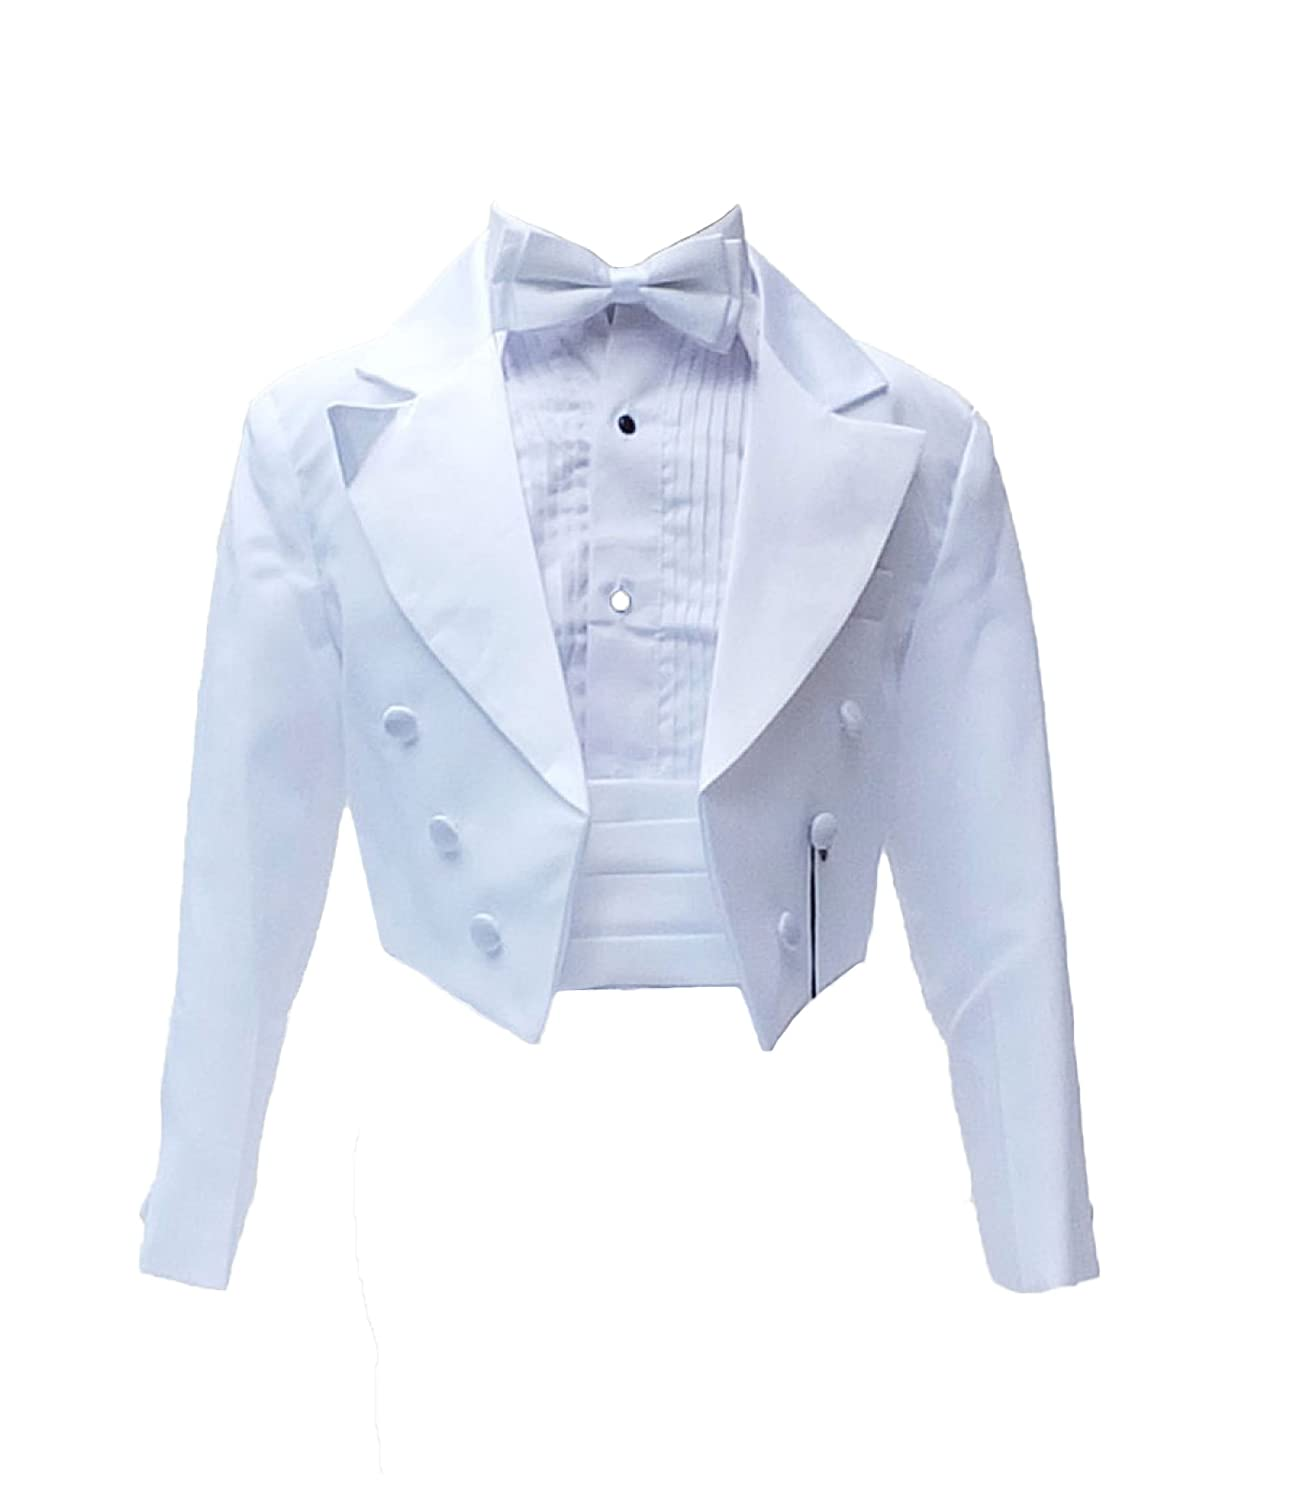 Baby Boys Tuxedo Tail Suit in bianco 5 pz per battesimo matrimonio Paggio cena